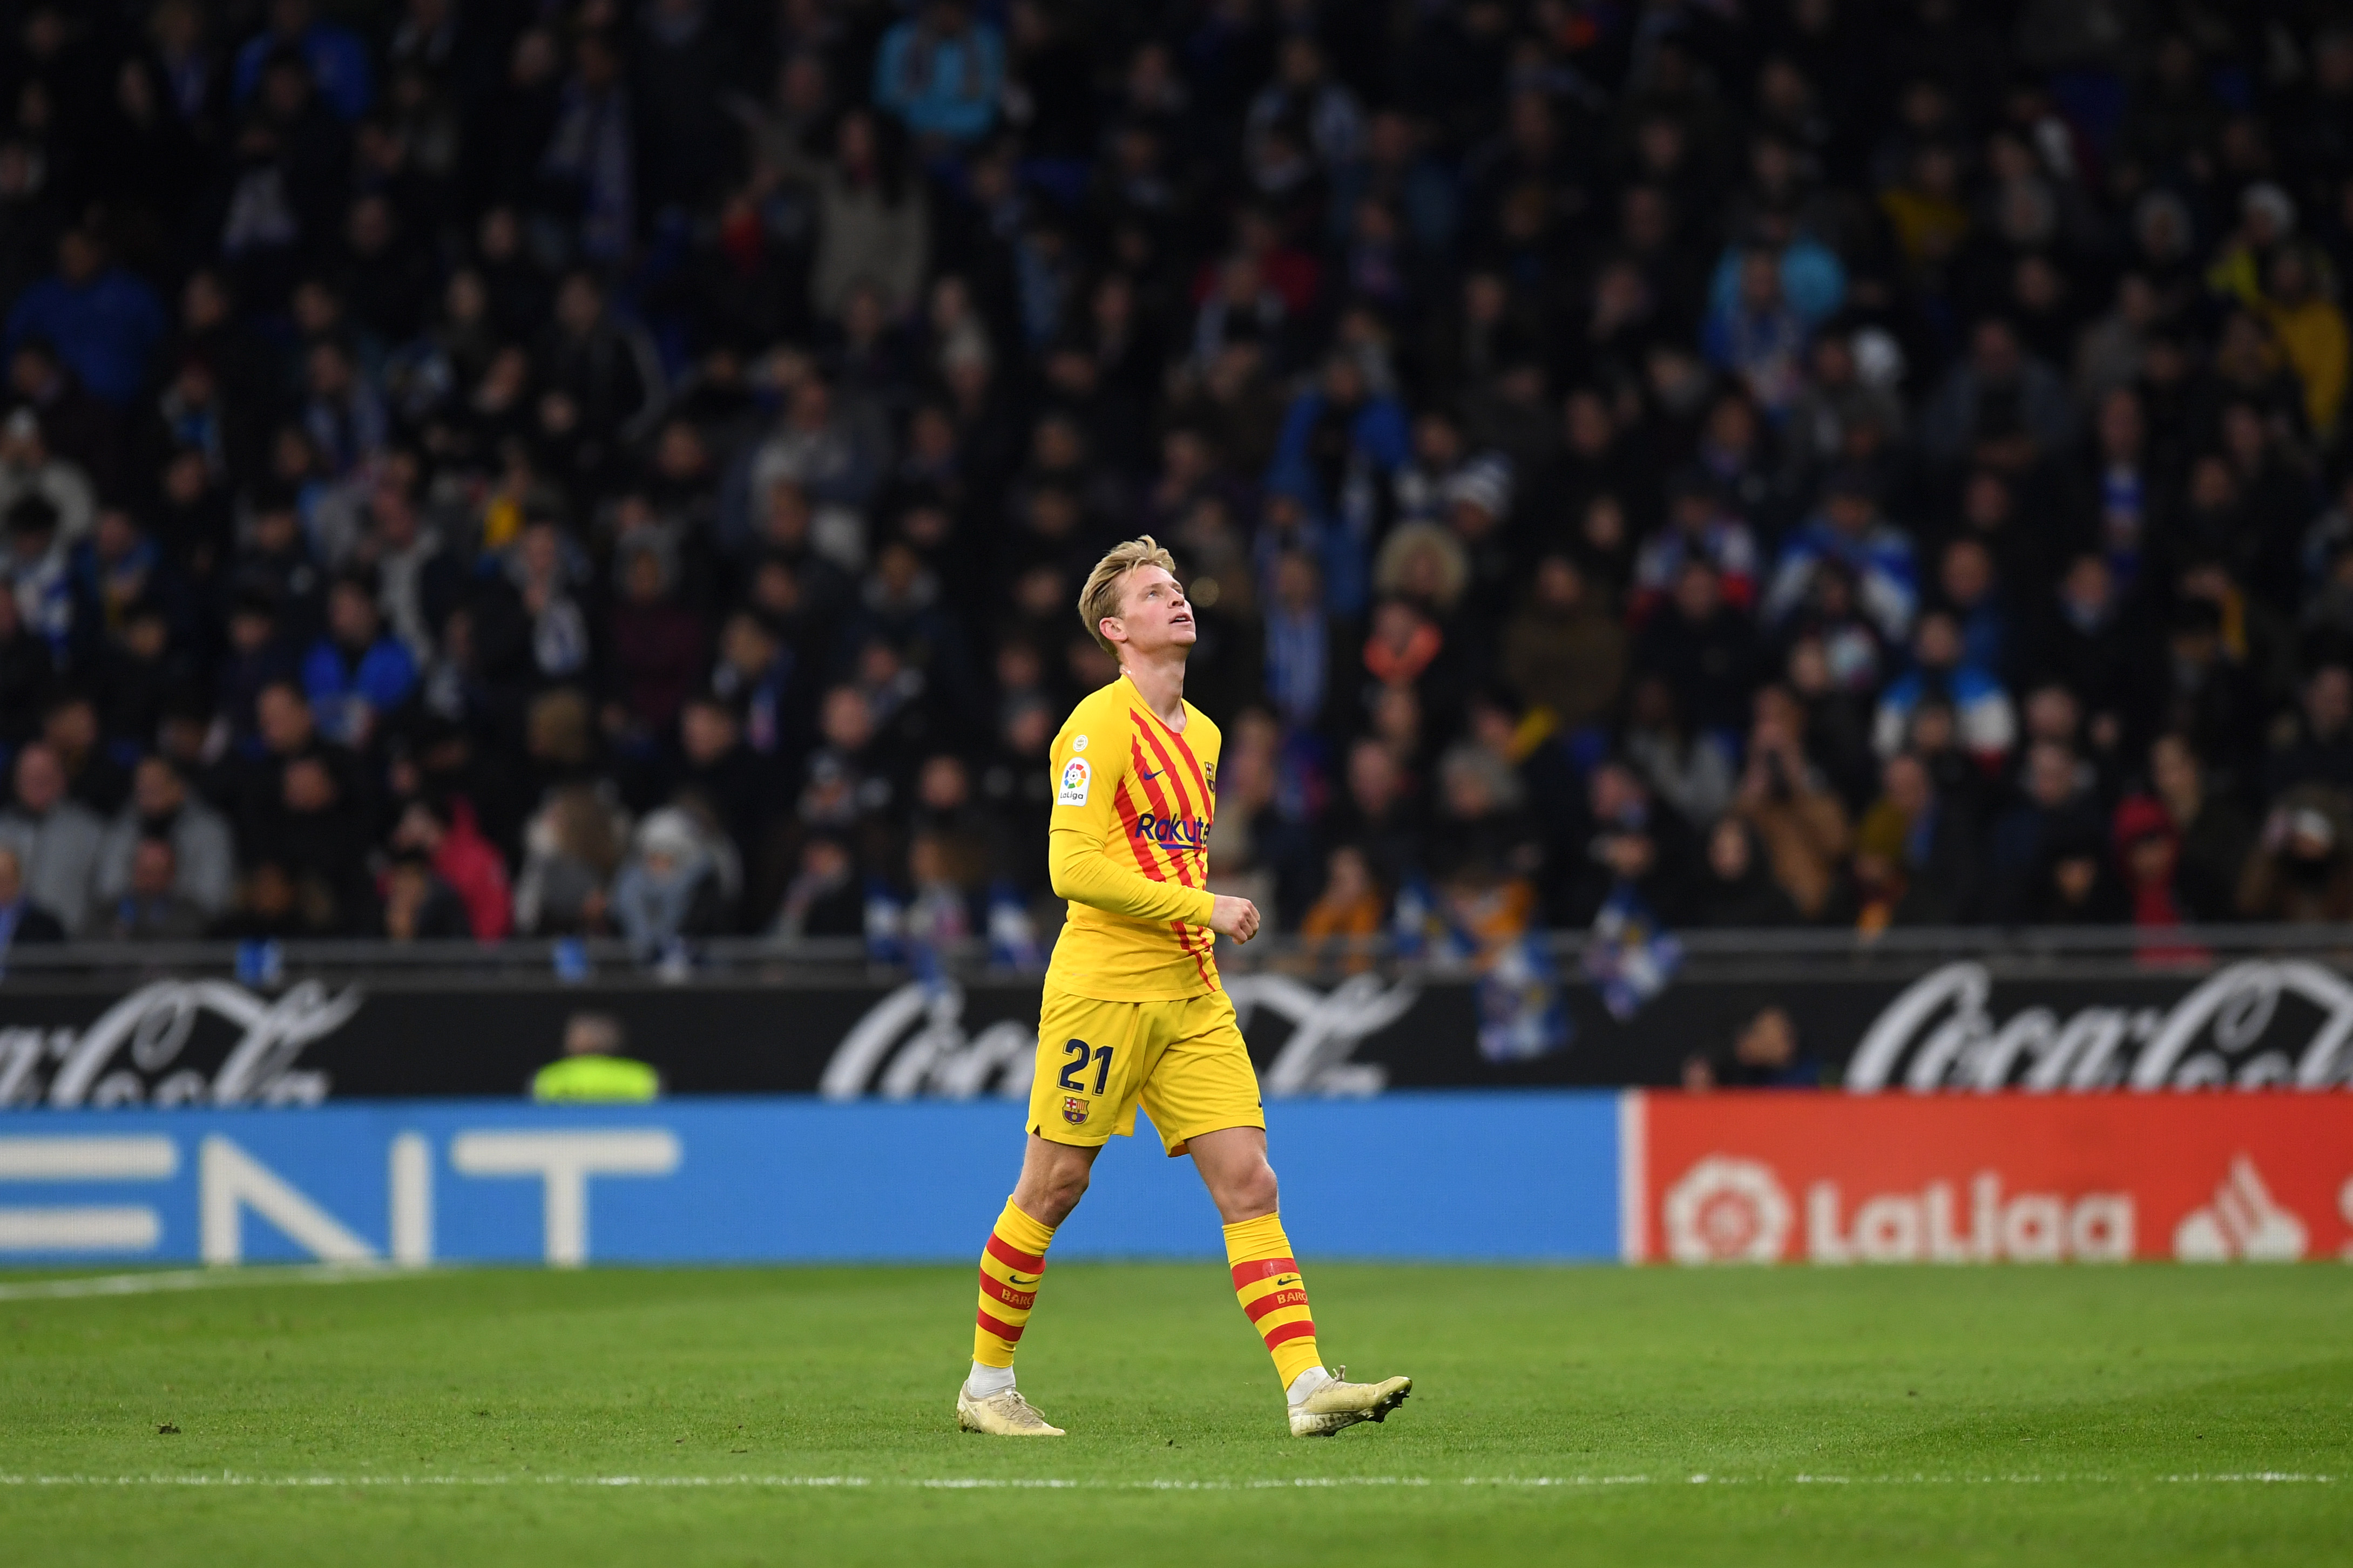 Frenkie de Jong could be sold by Barcelona (Photo by Alex Caparros/Getty Images)